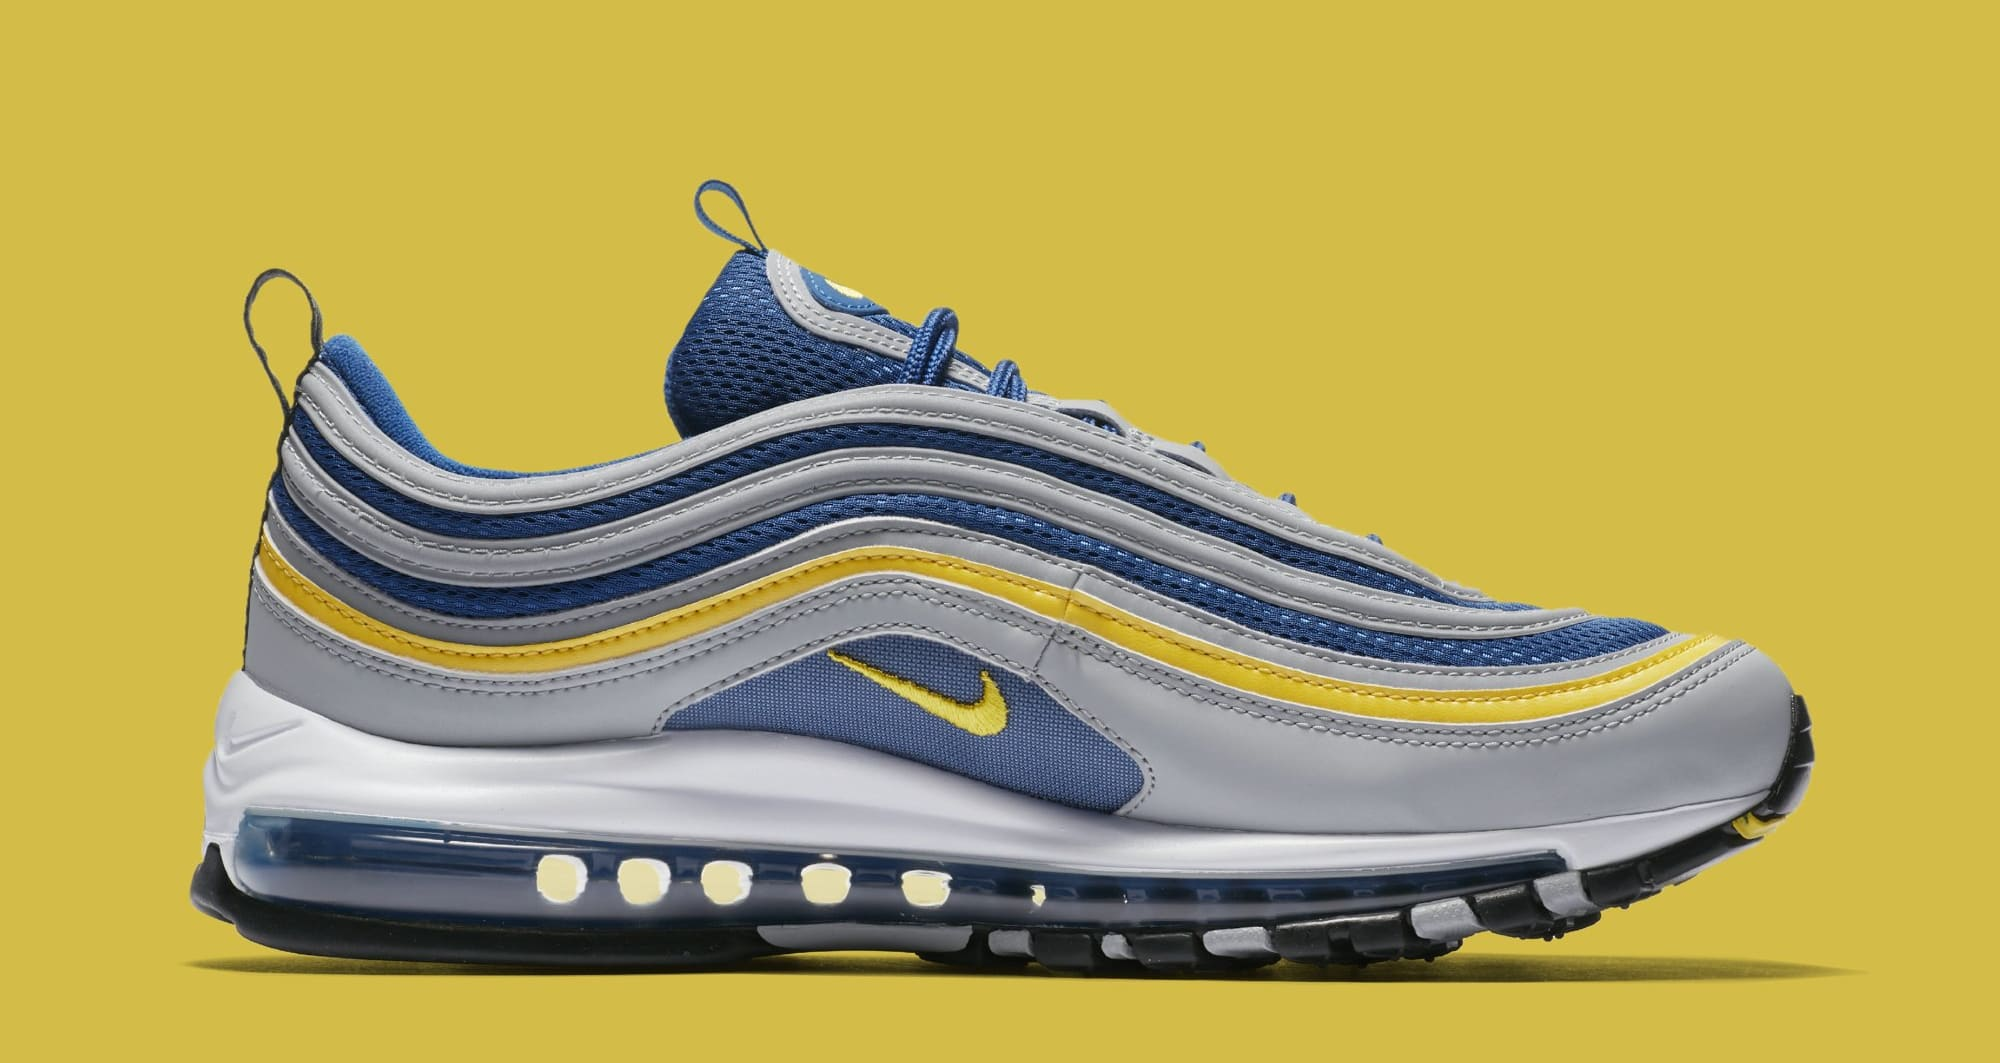 Nike Air Max 97 'Wolf Grey/Tour Yellow/Gym Blue' 921826-006 (Medial)